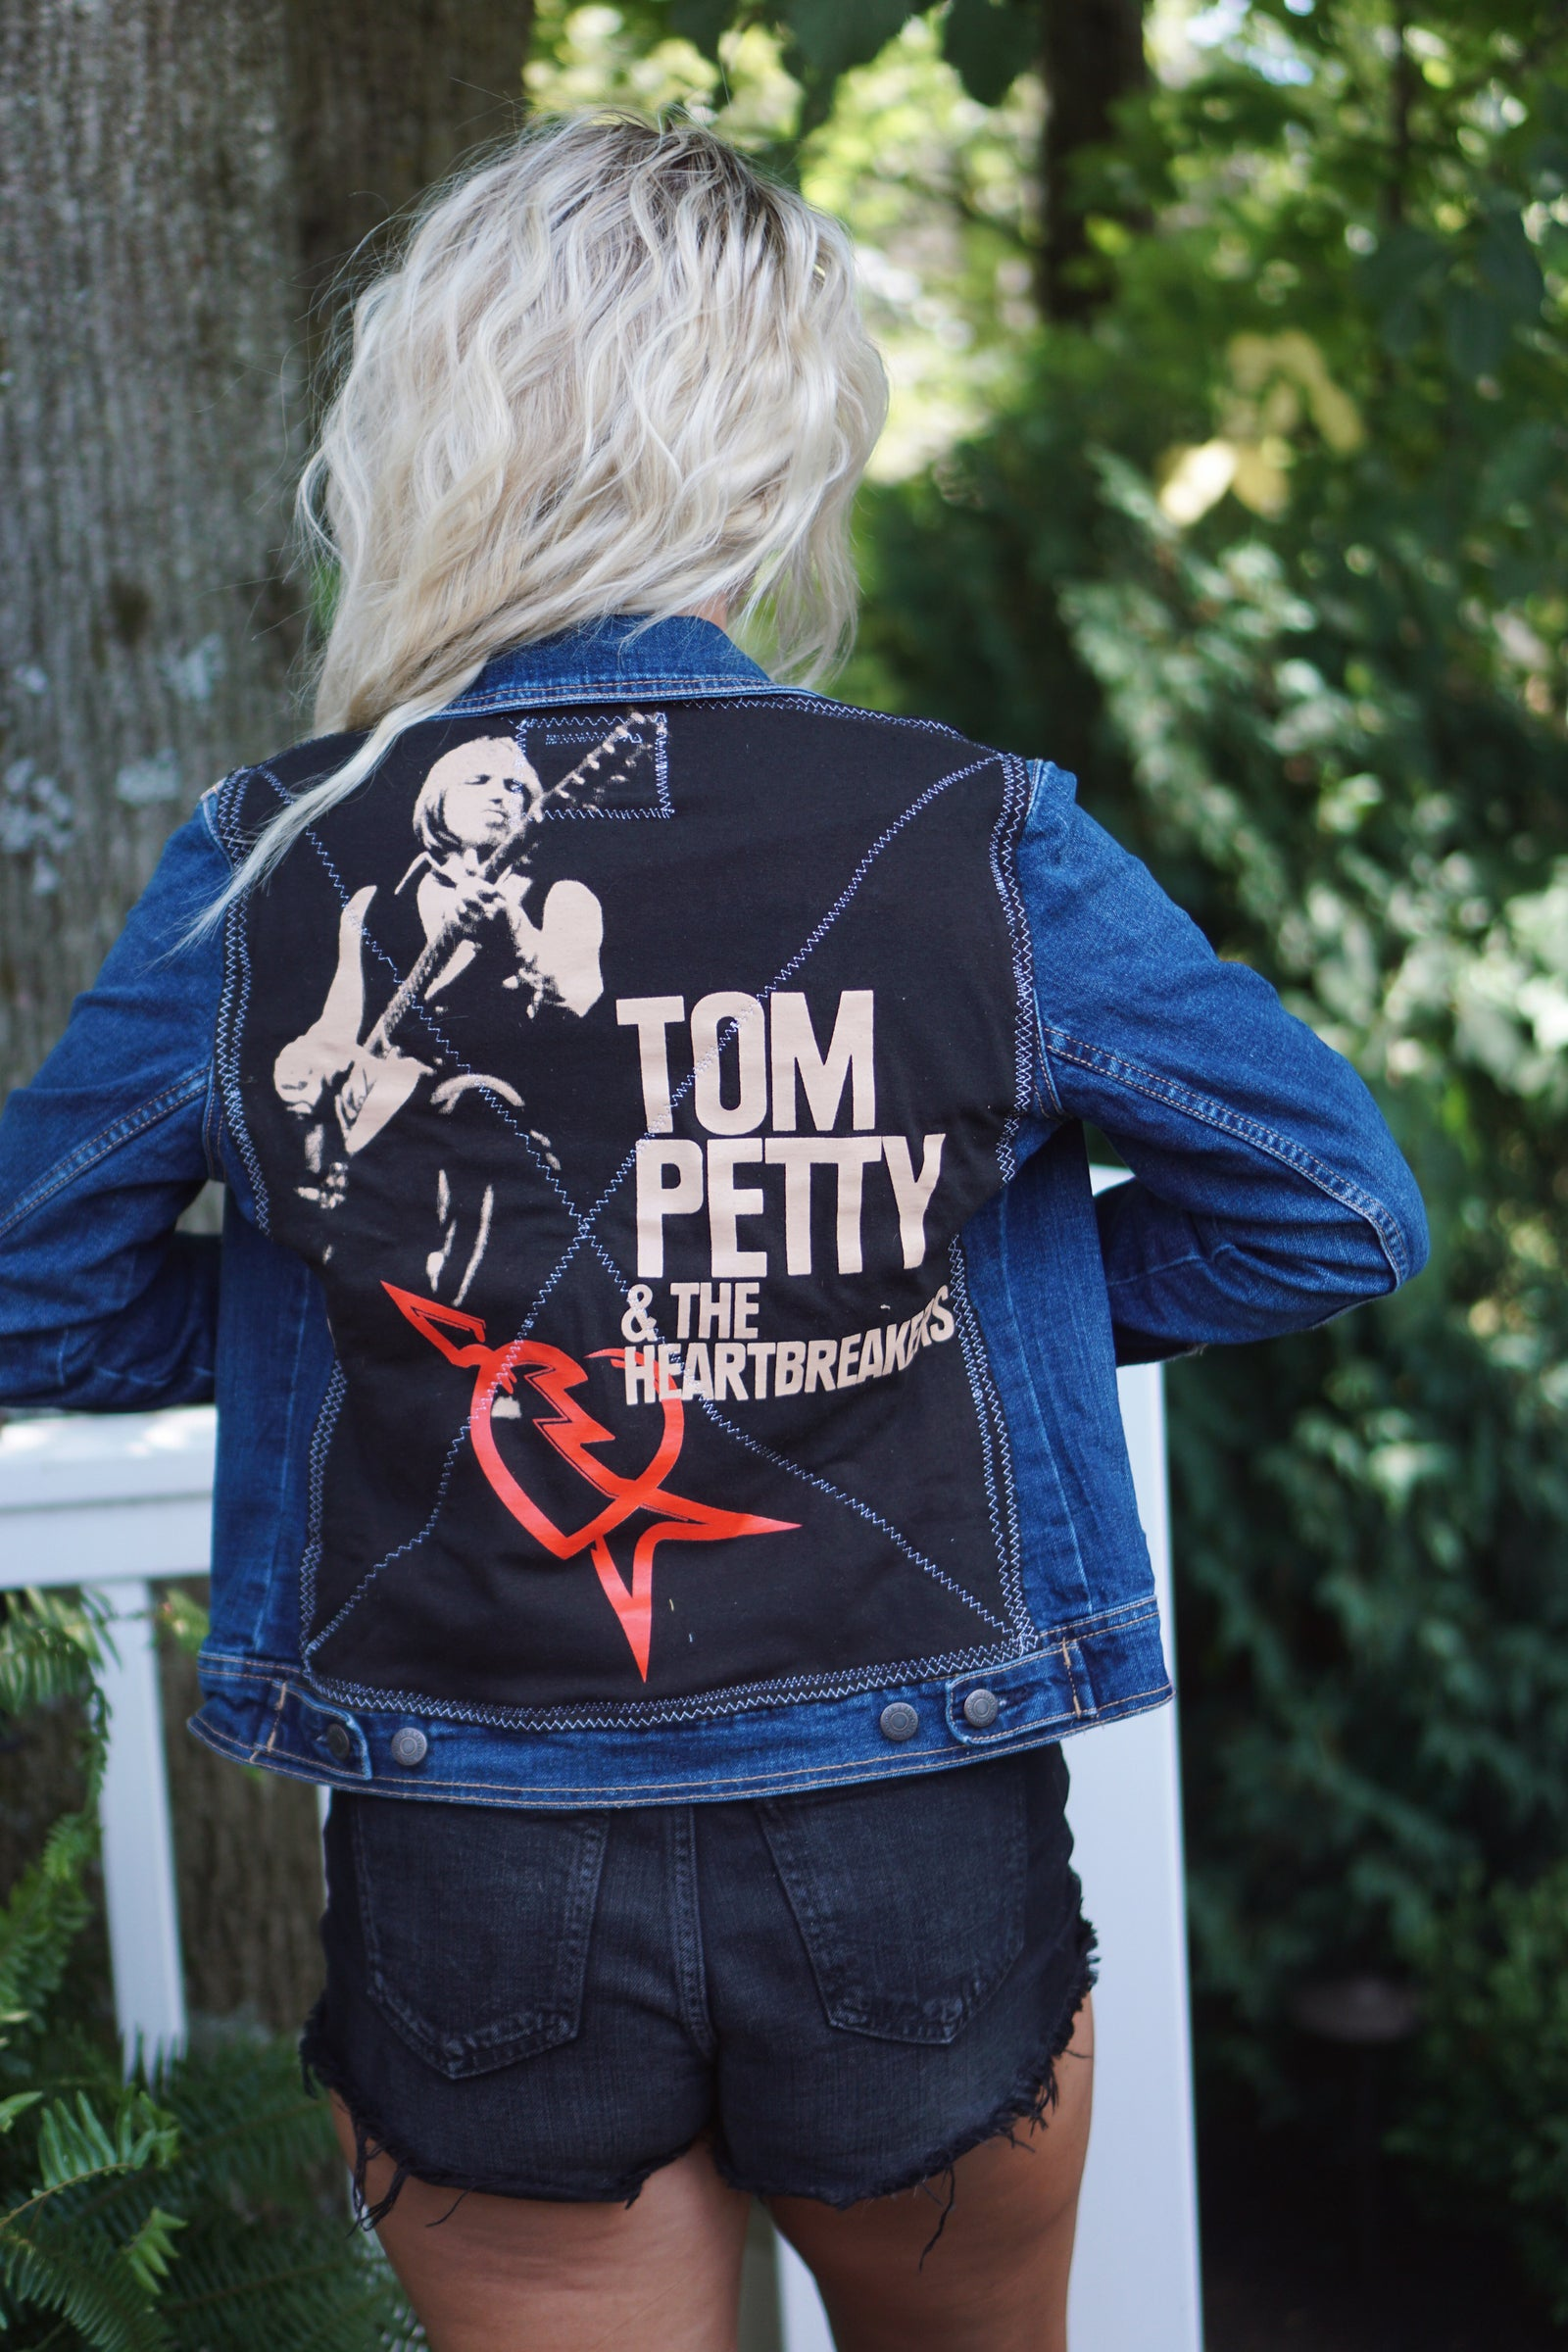 Tom Petty & The Heartbreakers Denim Jacket